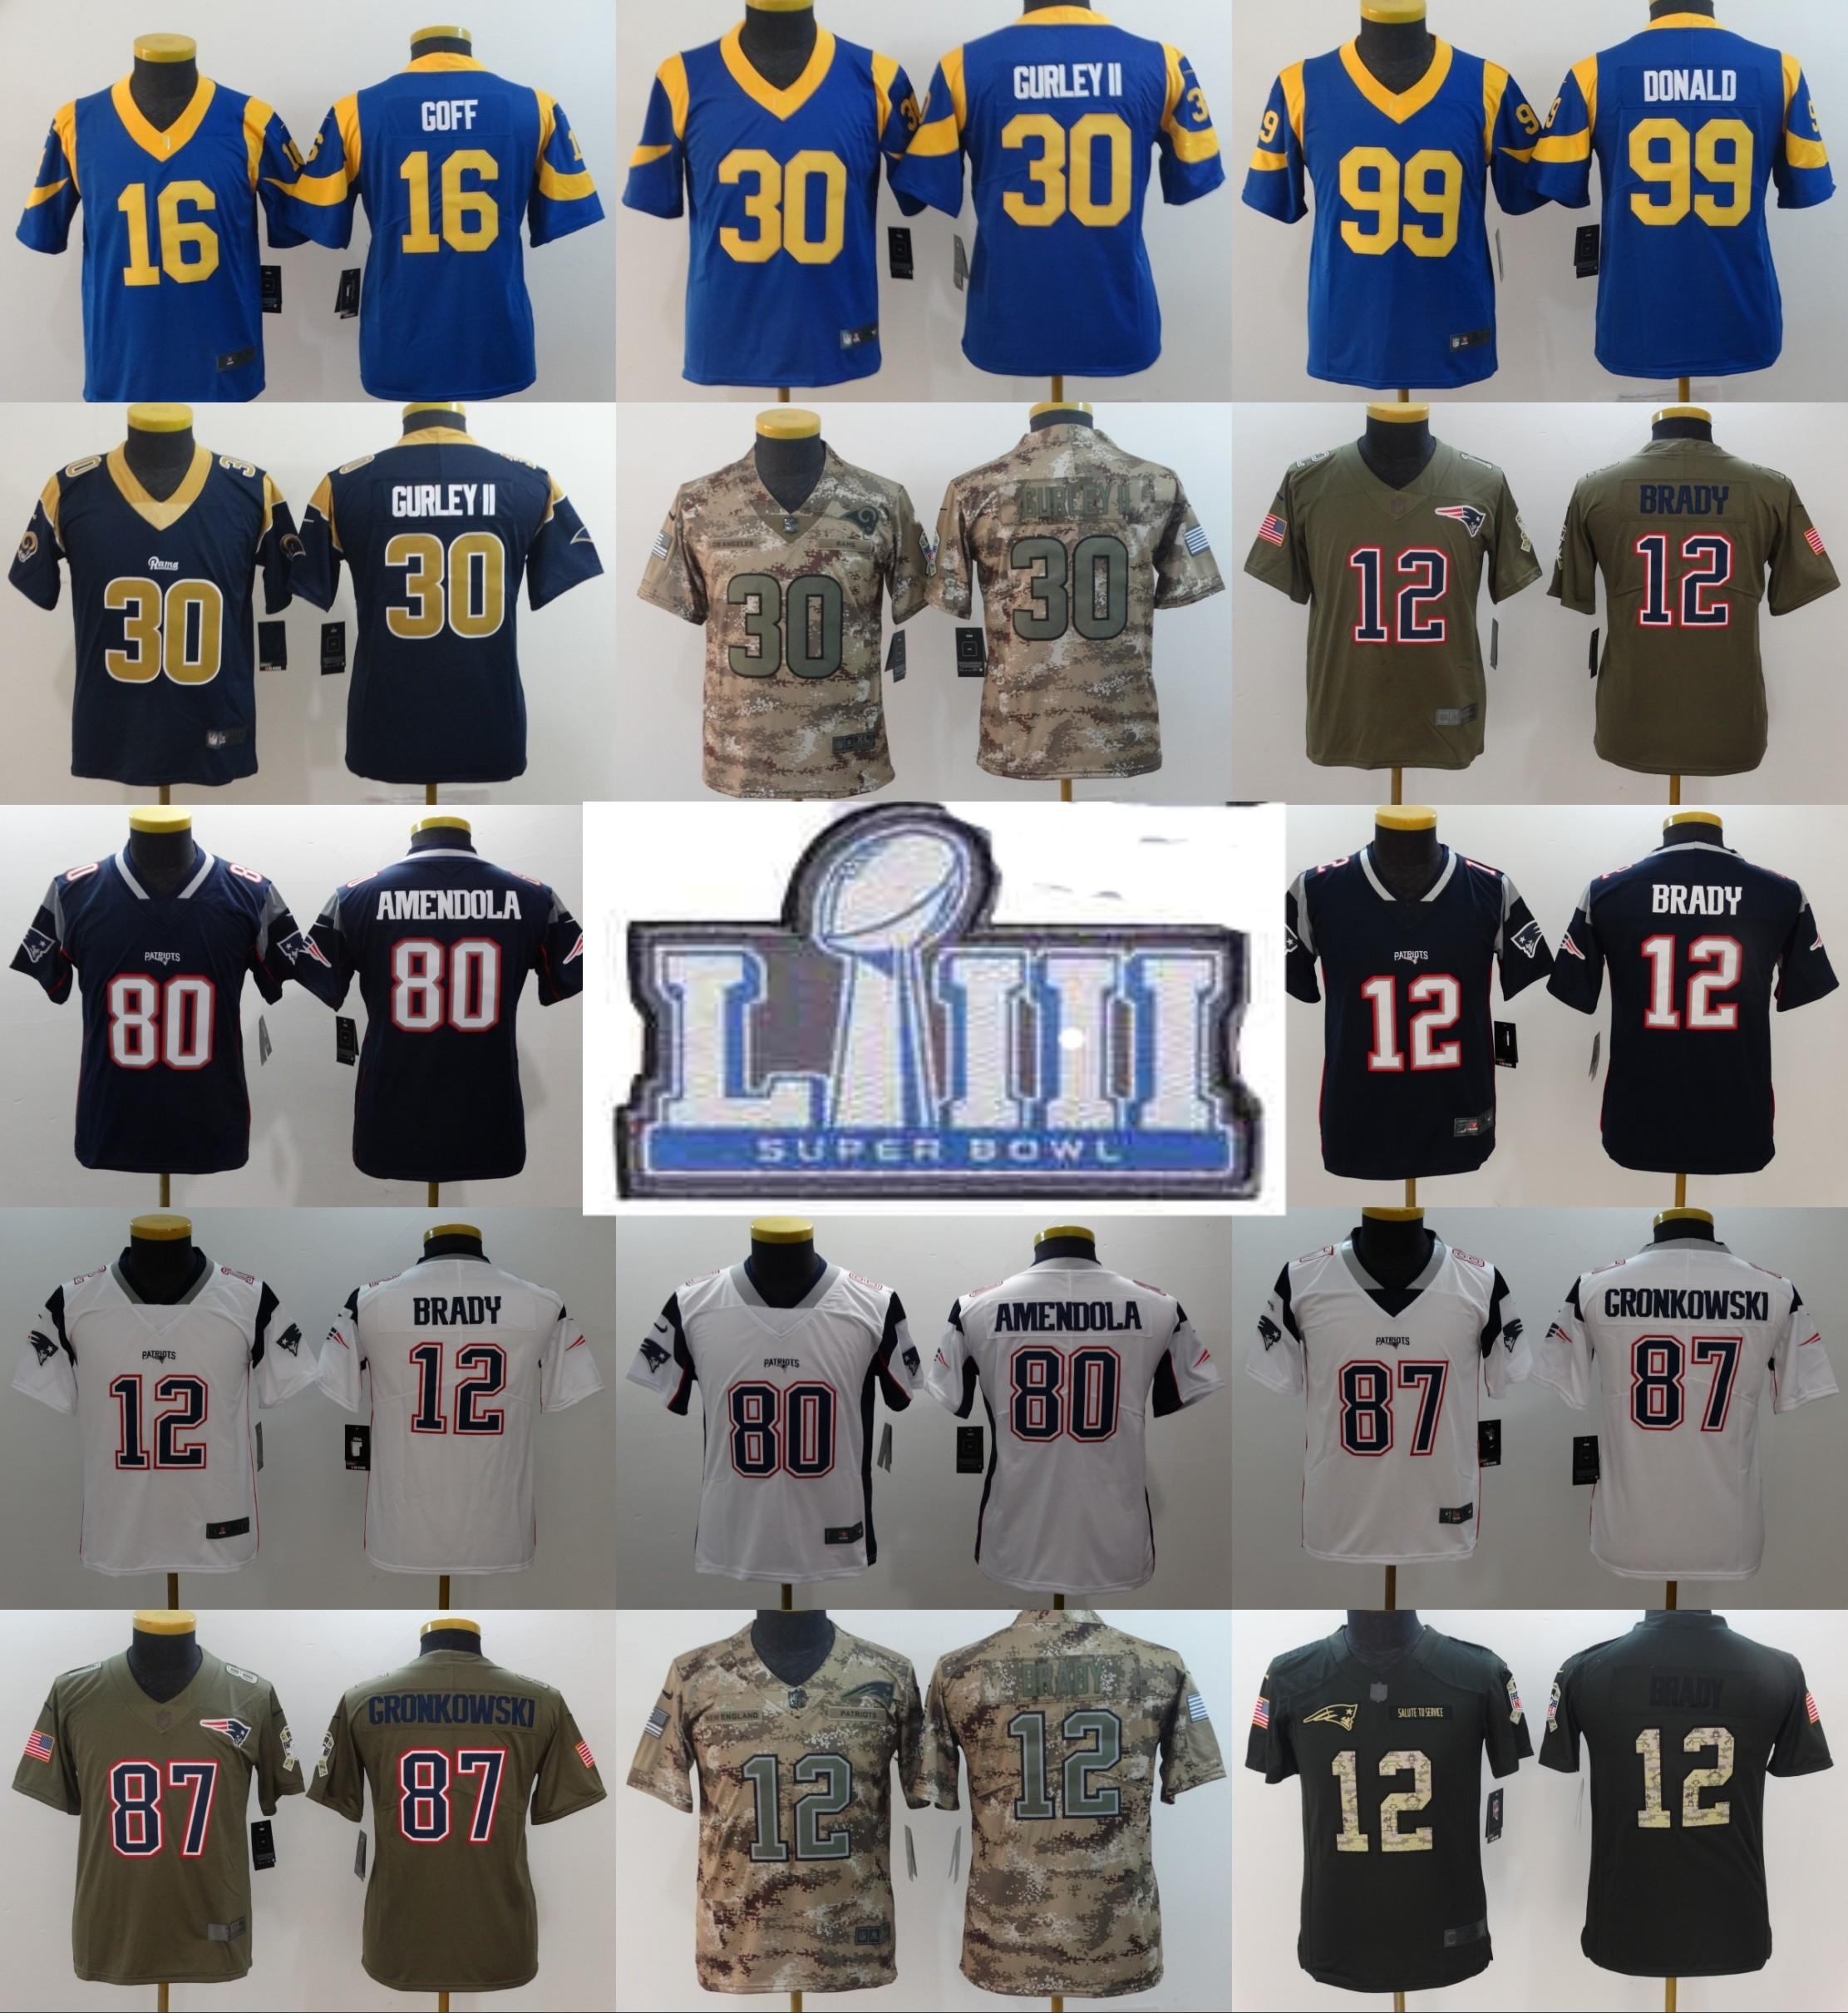 outlet store 5e260 f3219 Youth 12 Tom Brady Patriots 80 Danny Amendola 87 Rob Gronkowski 30 Todd  Gurley 16 Jared Goff 99 Aaron Donald Jersey 2019 Super Bowl Rams